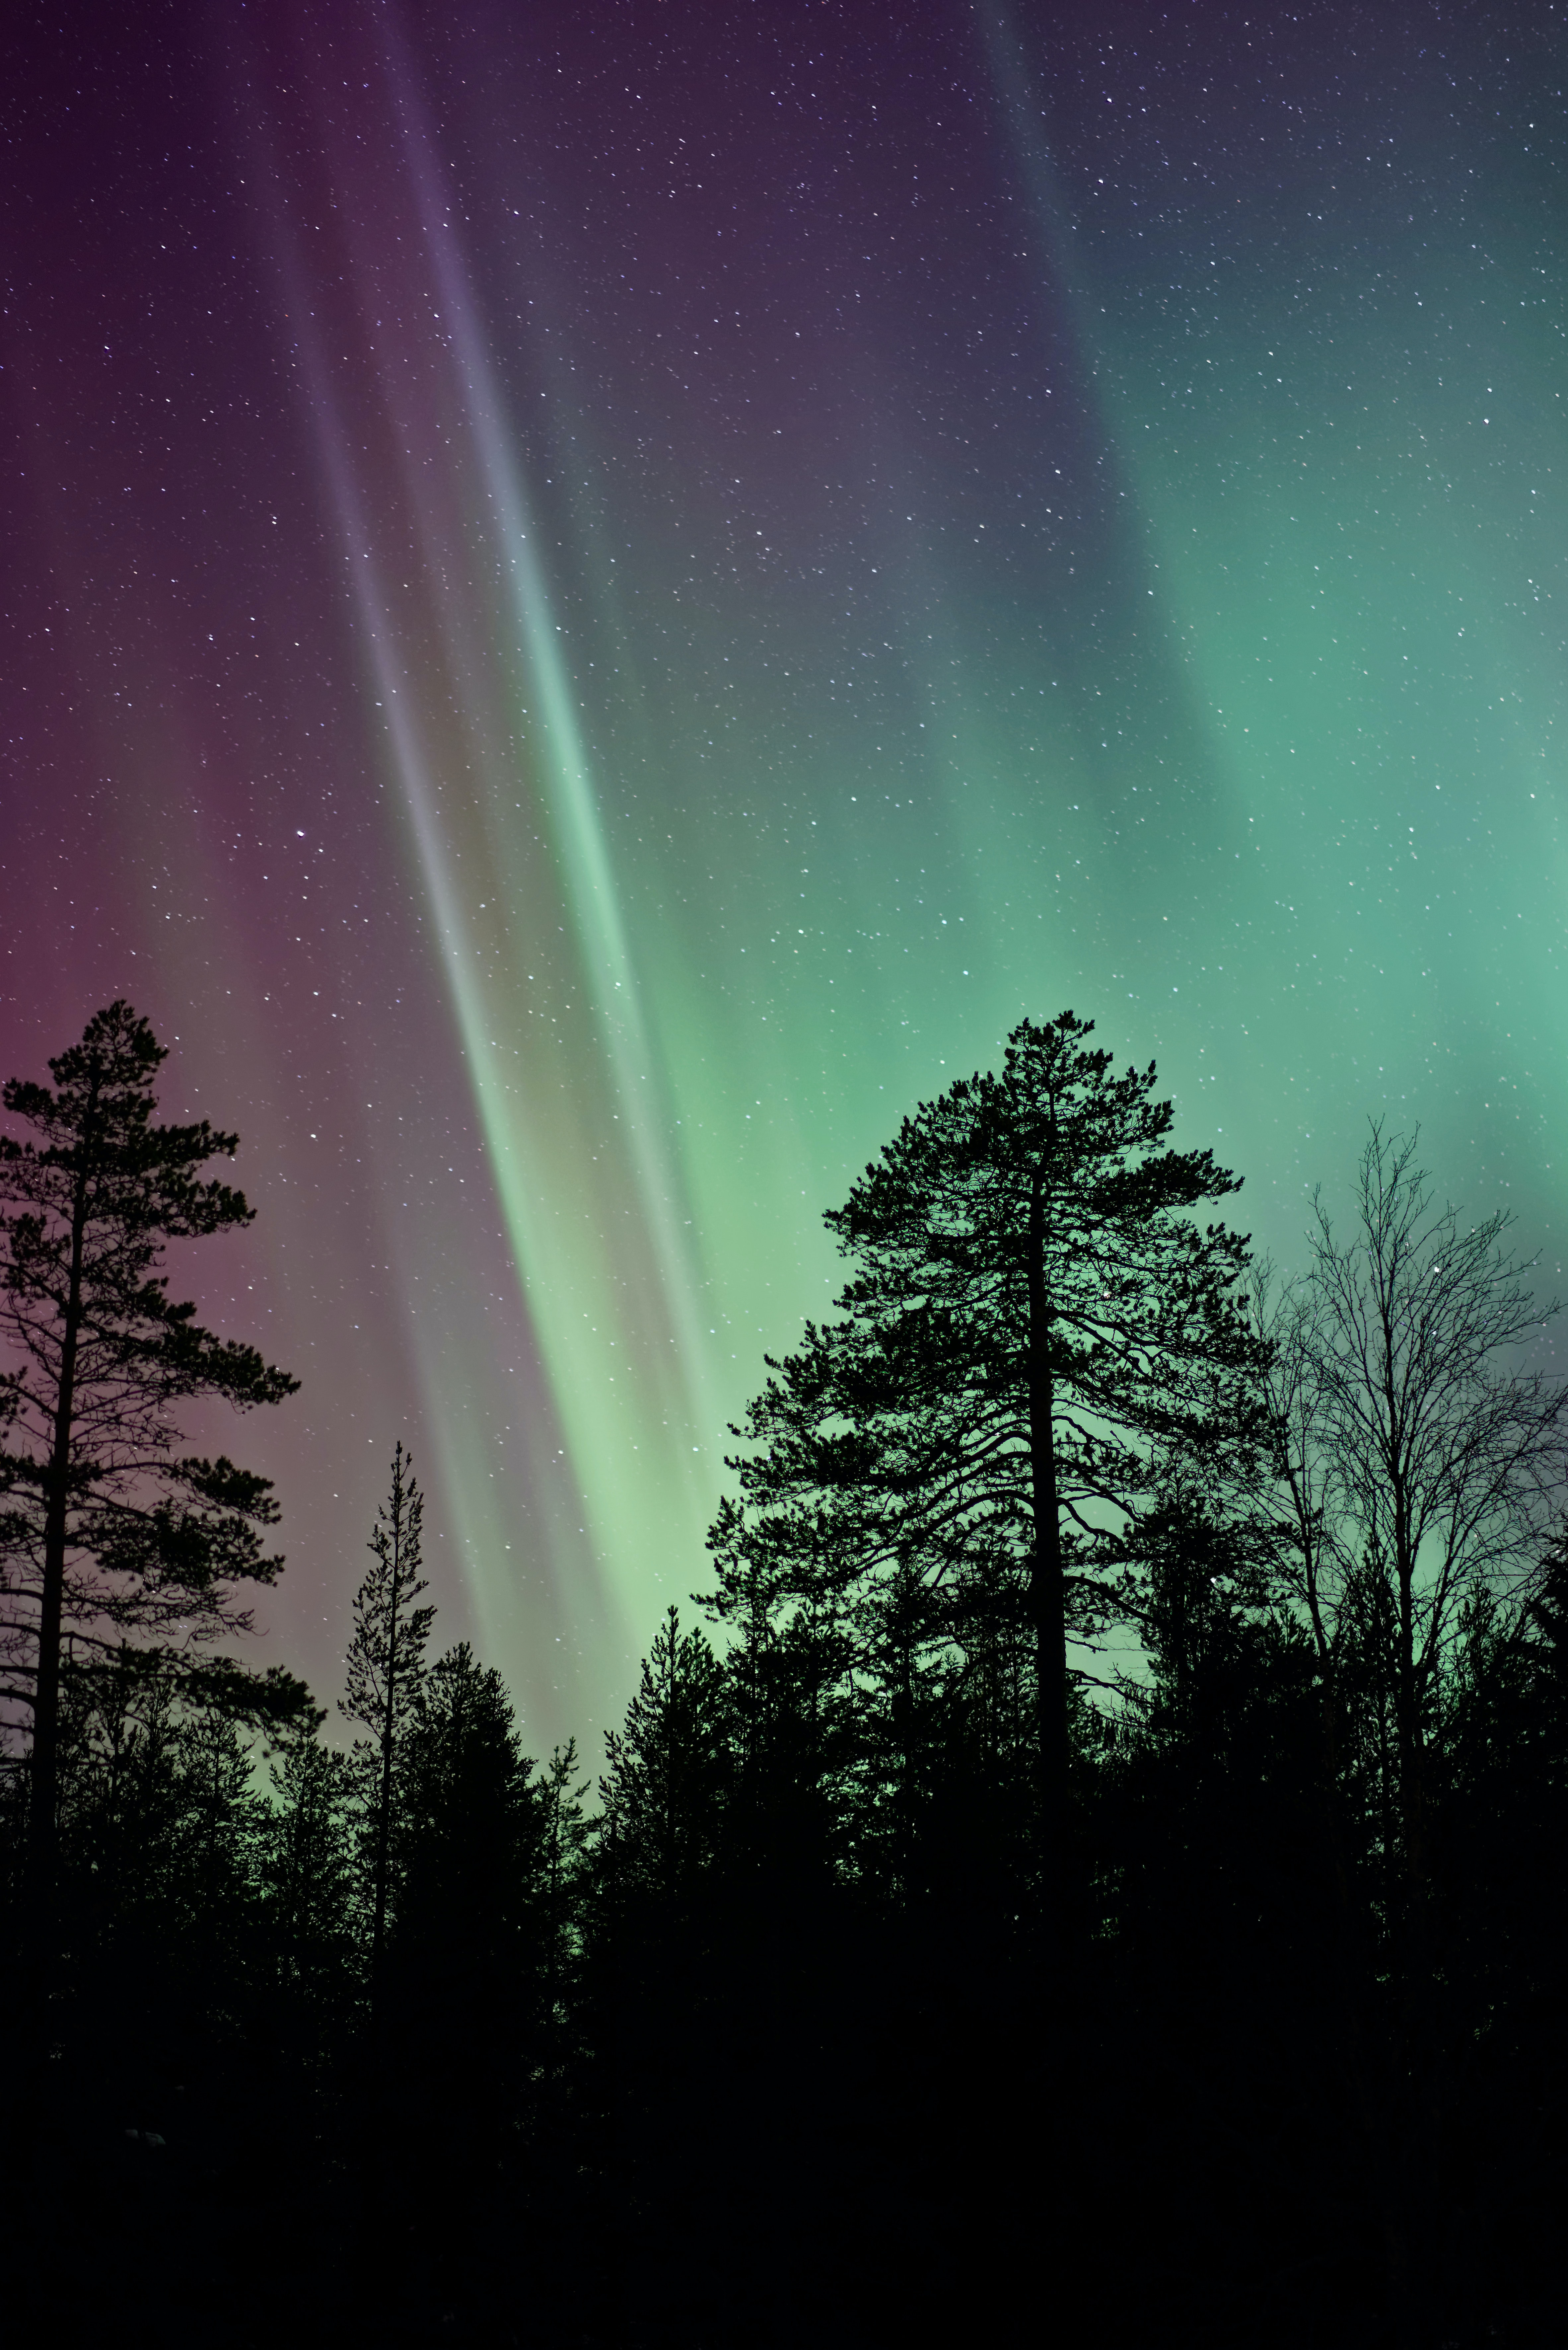 silhouette photo of aurora borealis